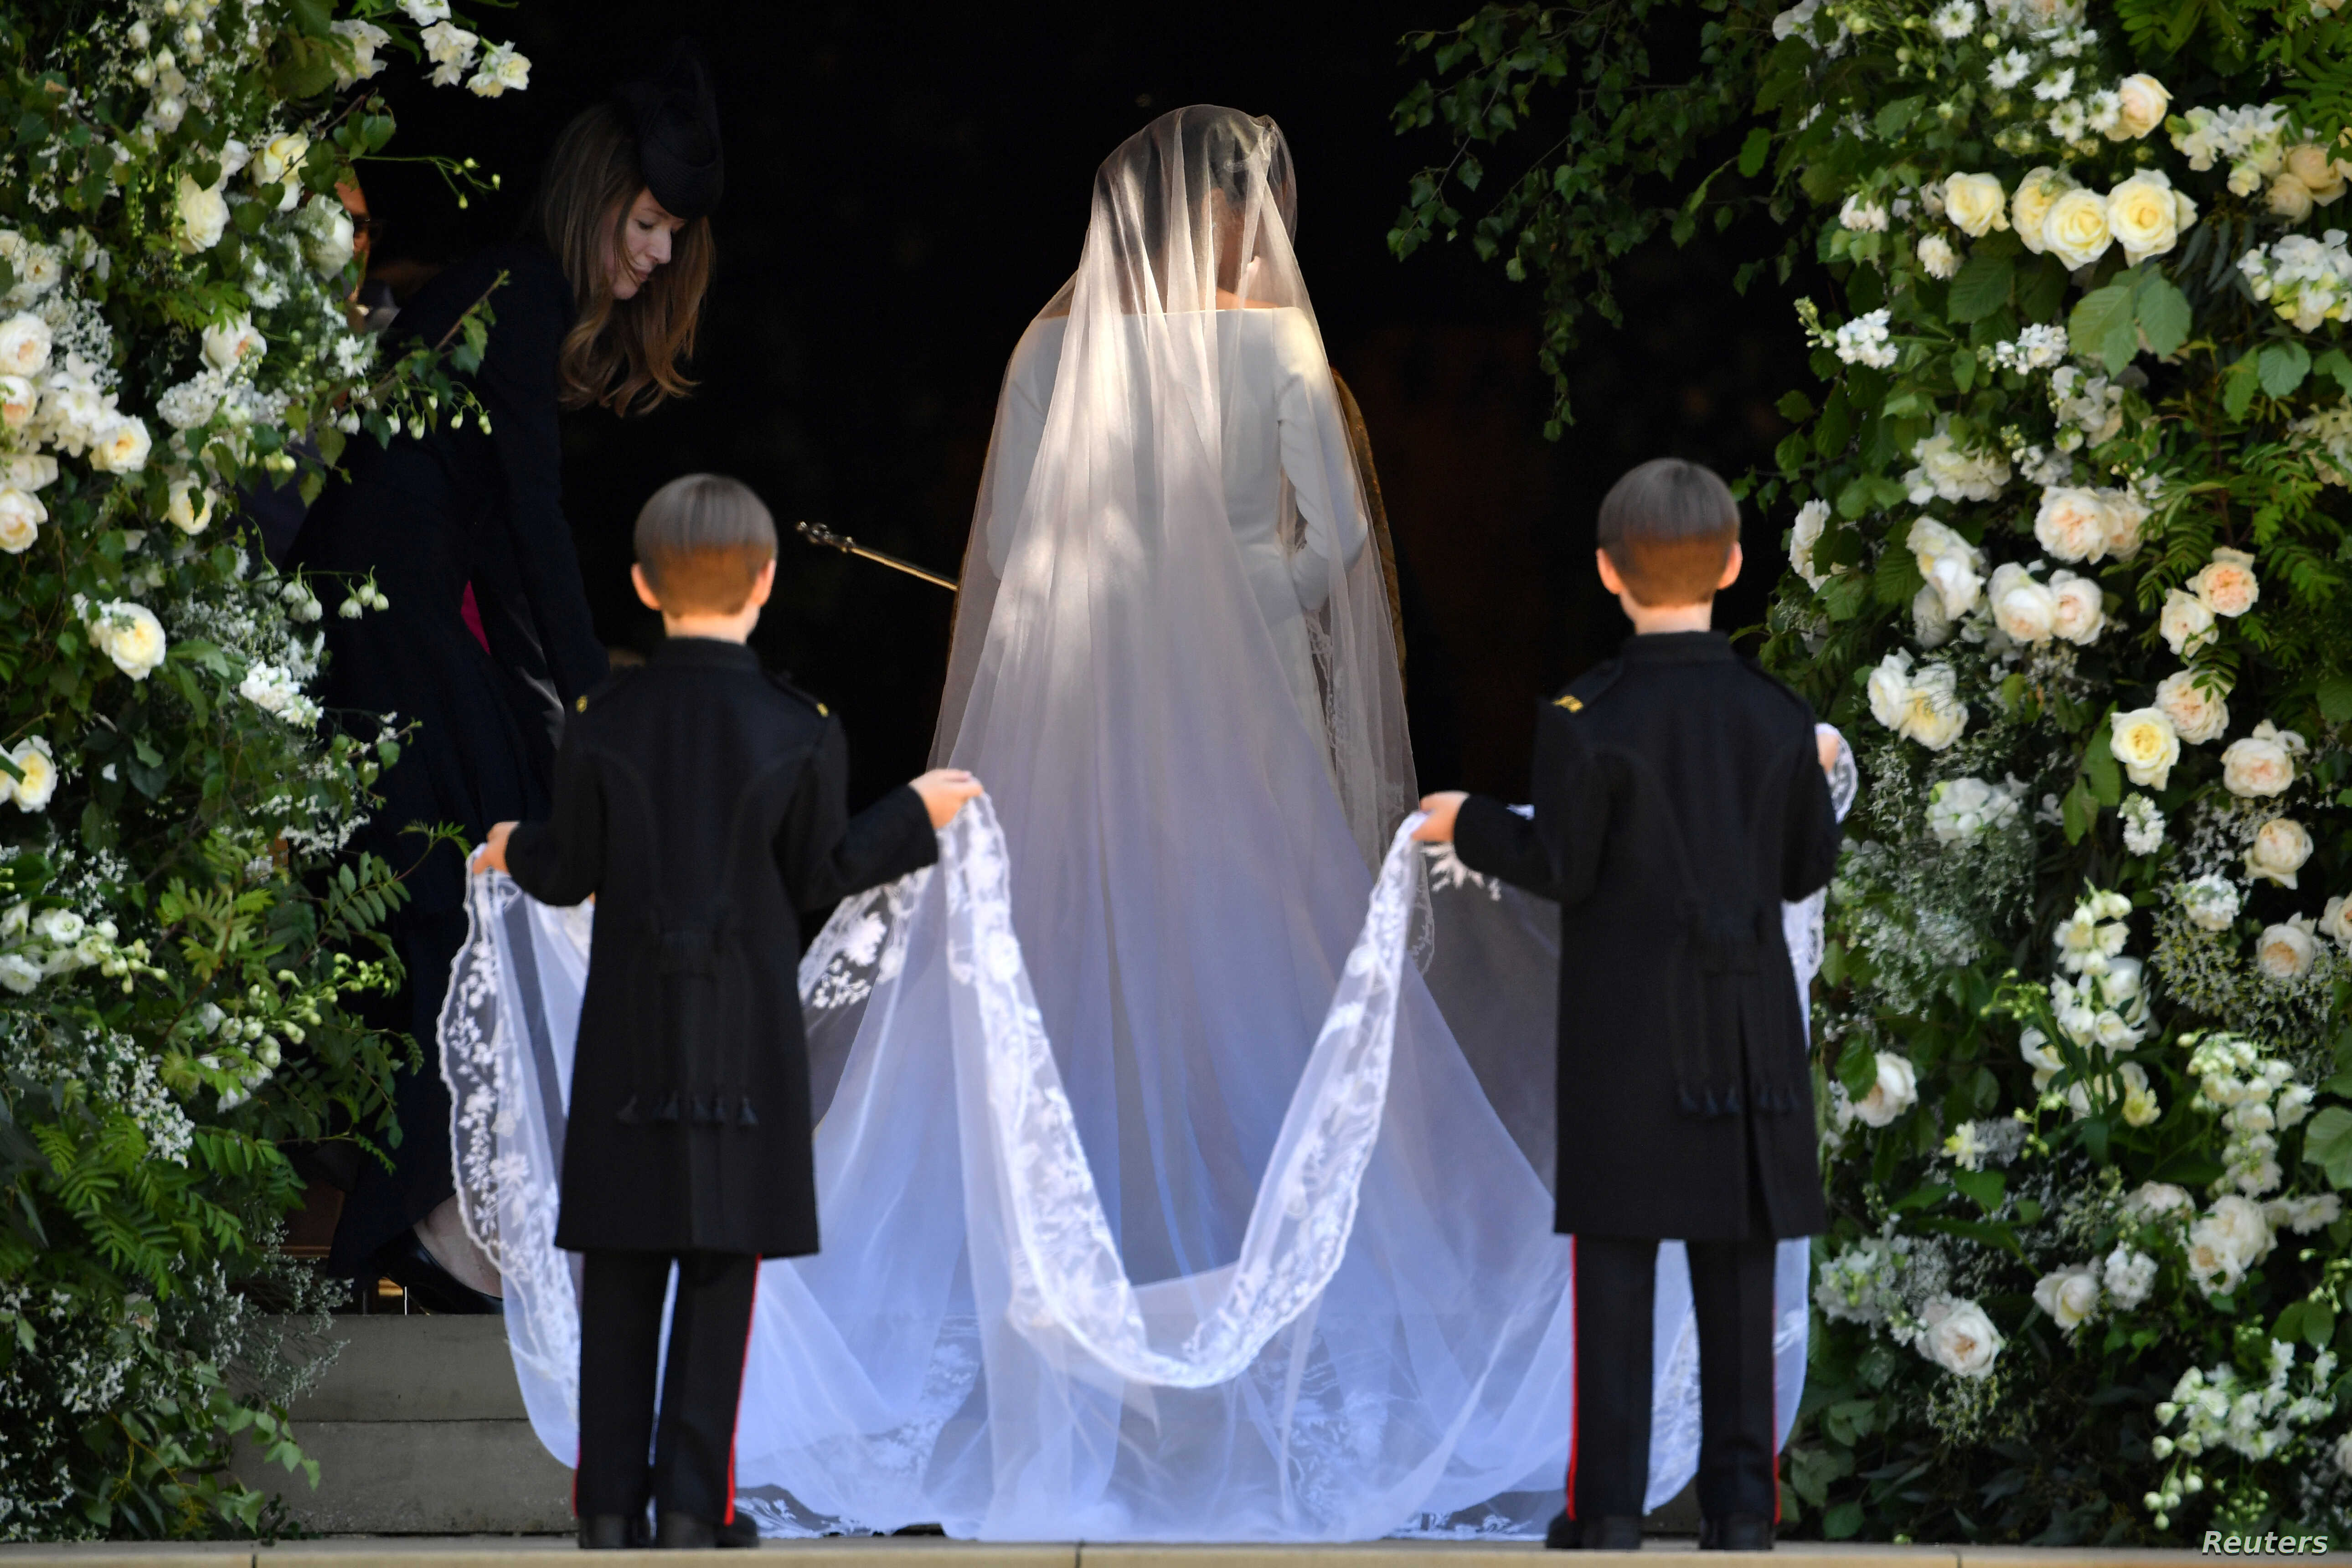 U.S. actress Meghan Markle arrives for the wedding ceremony to marry Britain's Prince Harry, Duke of Sussex, at St George's Chapel, Windsor Castle, in Windsor, Britain, May 19, 2018.